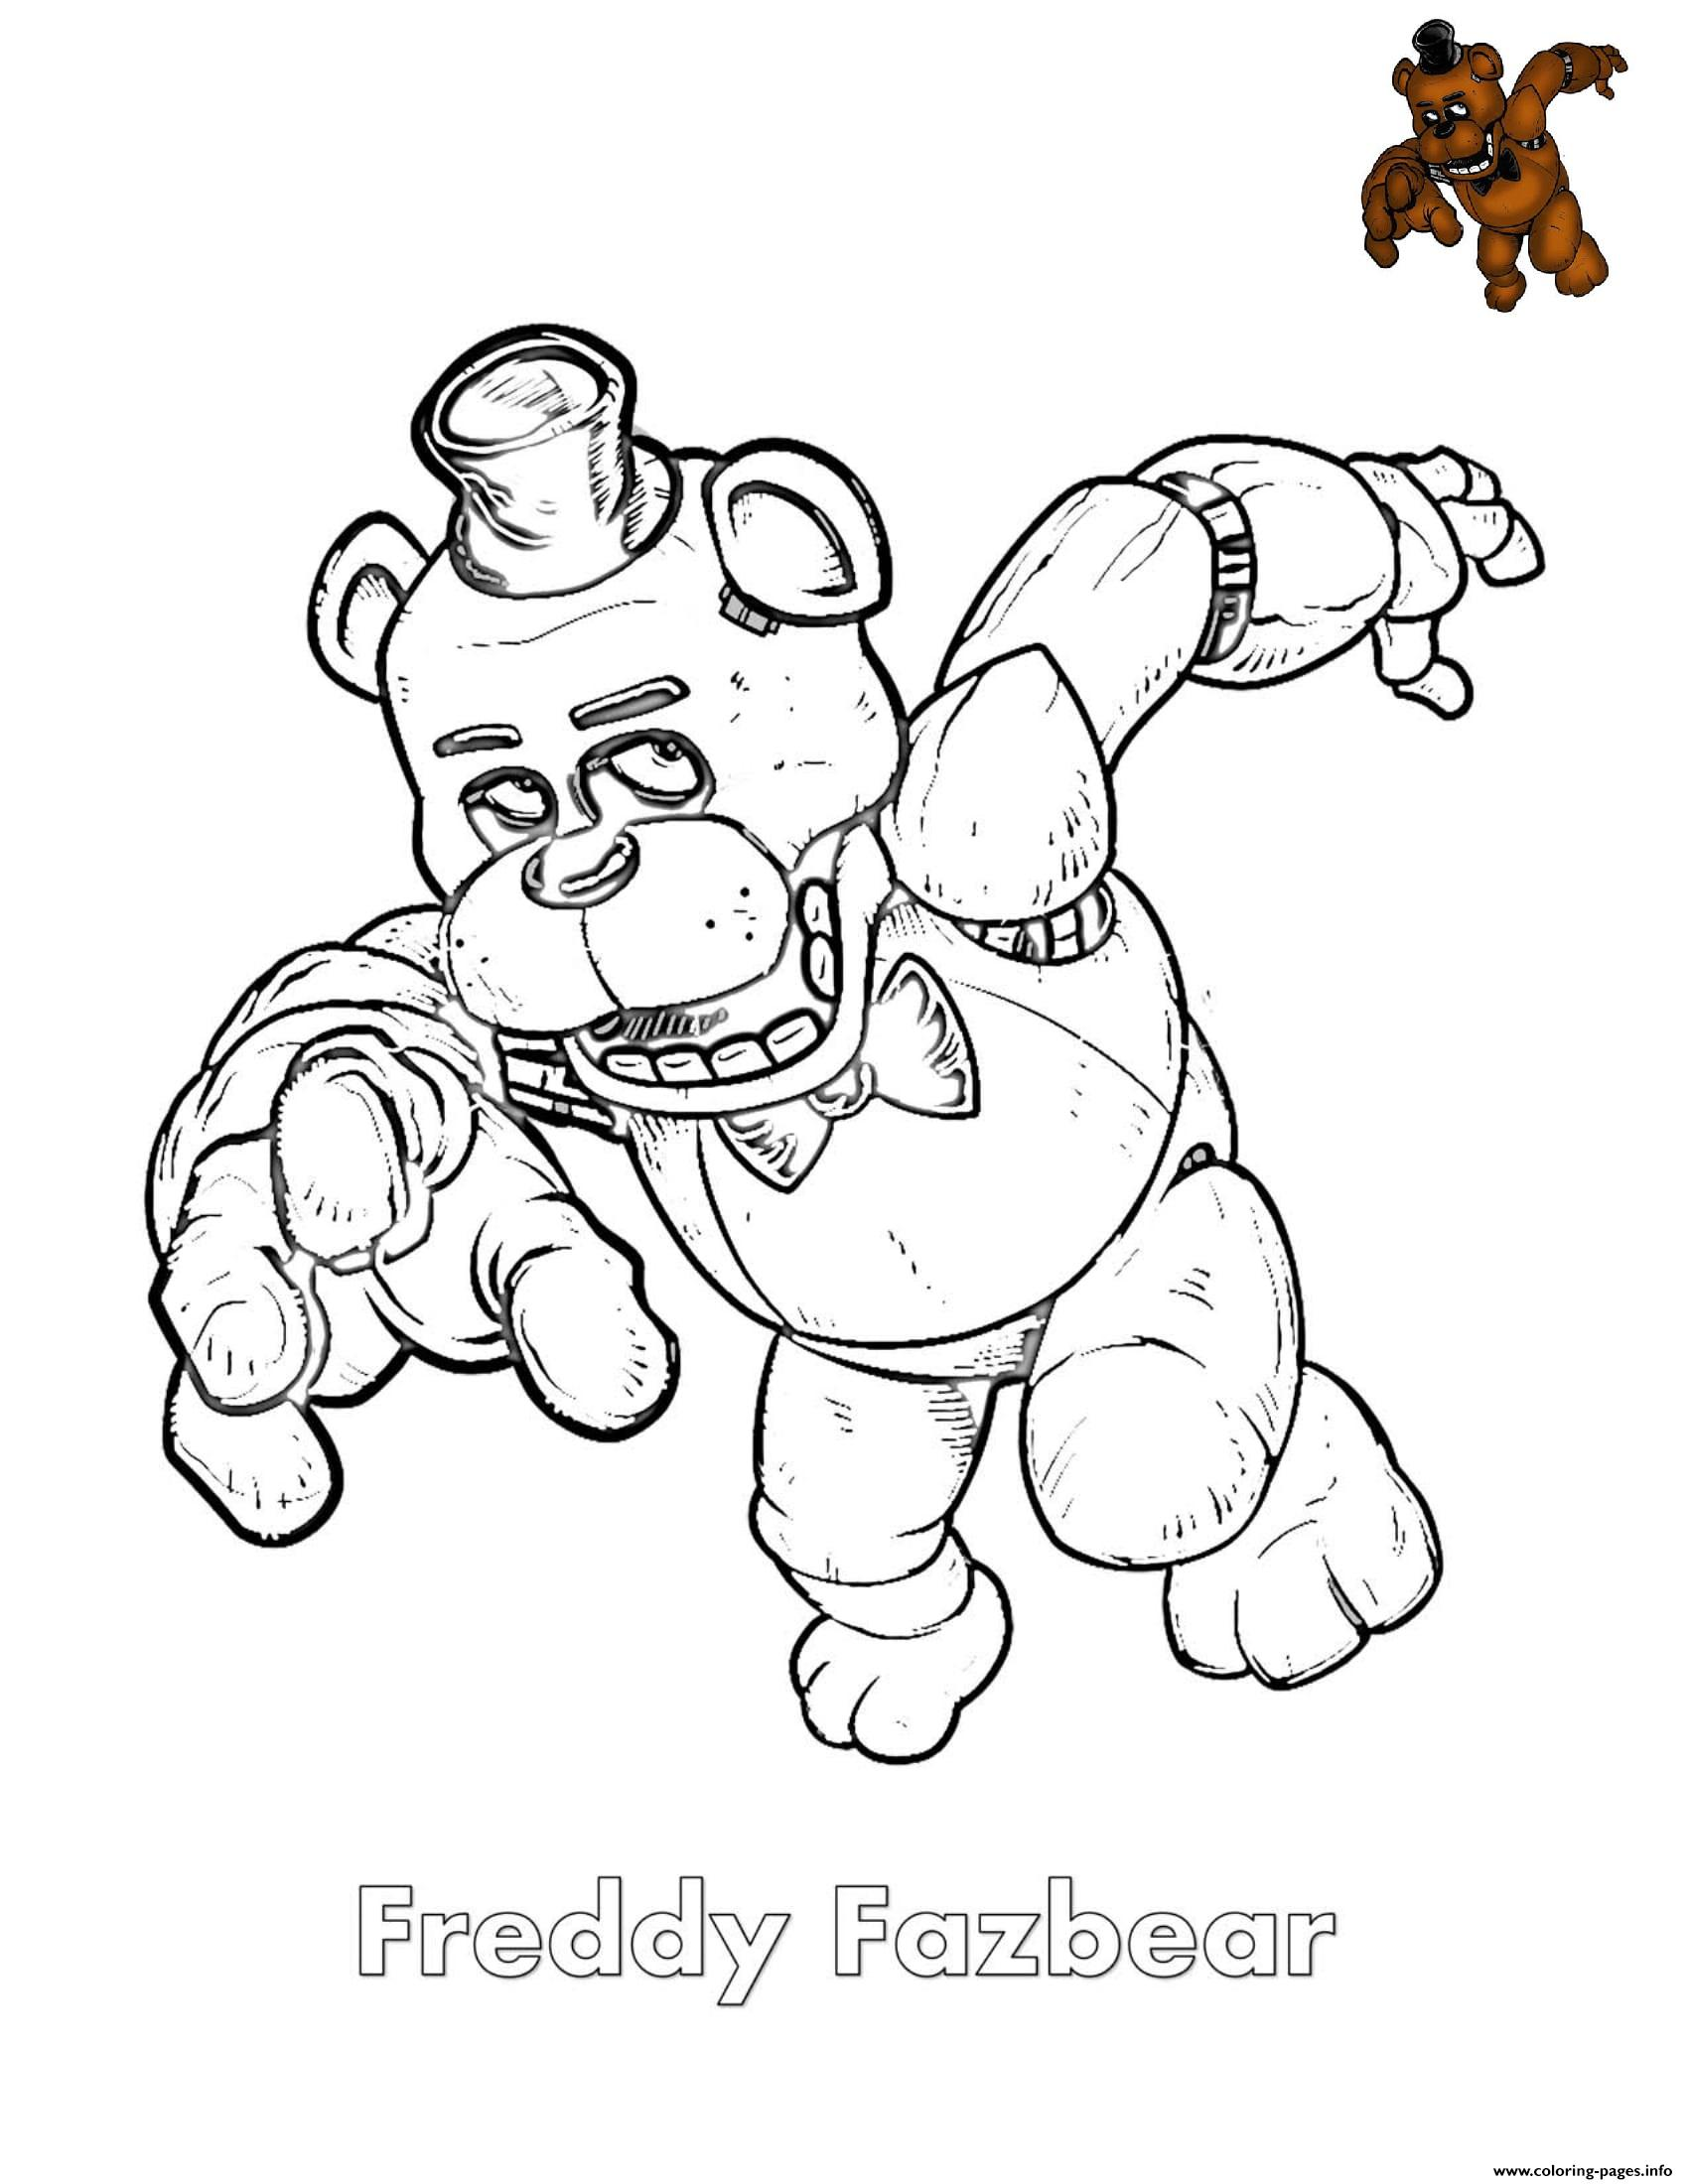 Coloring pages of fred bear Fred bear coloring pages | Shay ... | 2200x1700